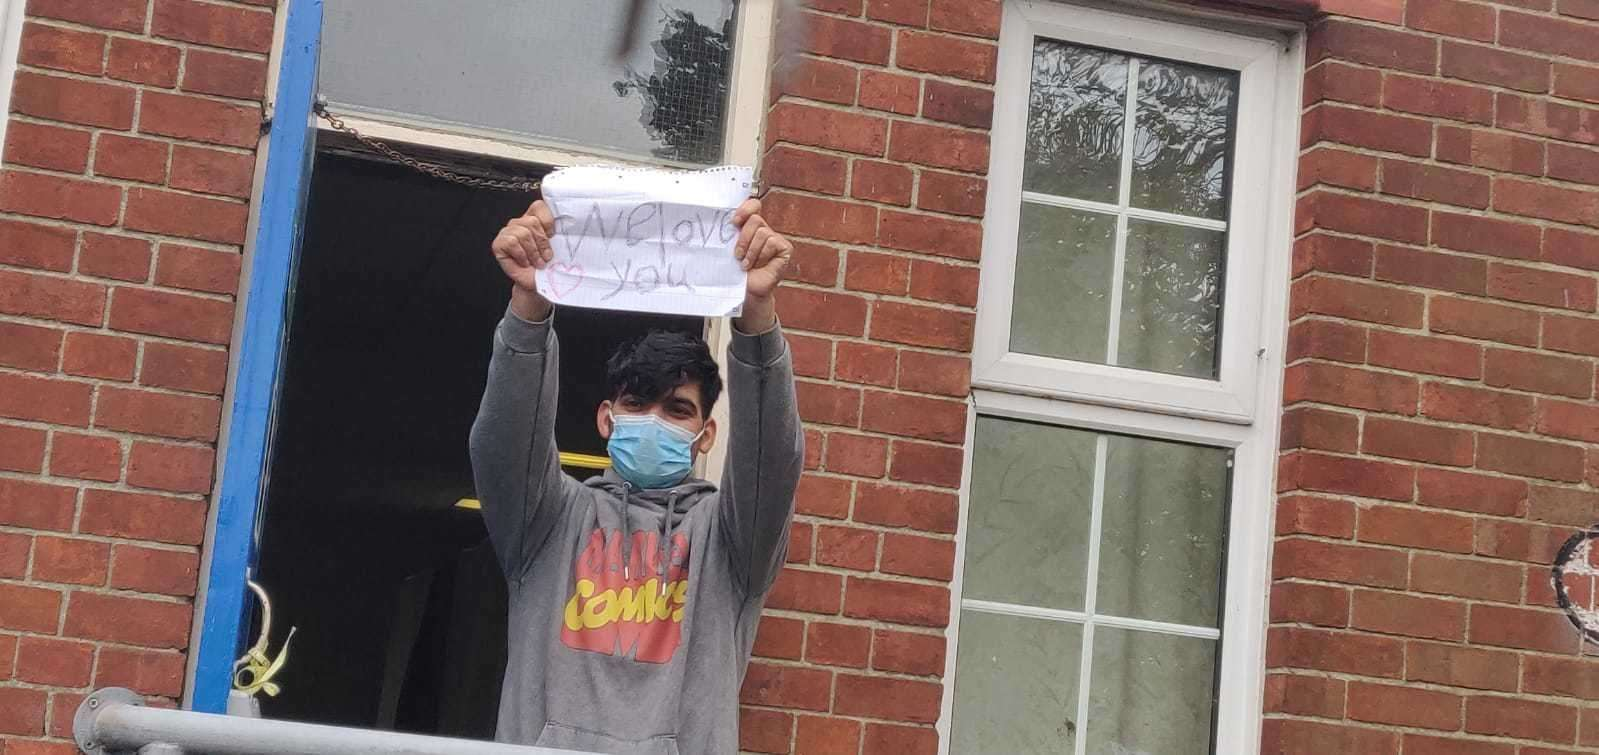 A refugee holds up a 'we love you' sign Picture: Rhys Griffiths